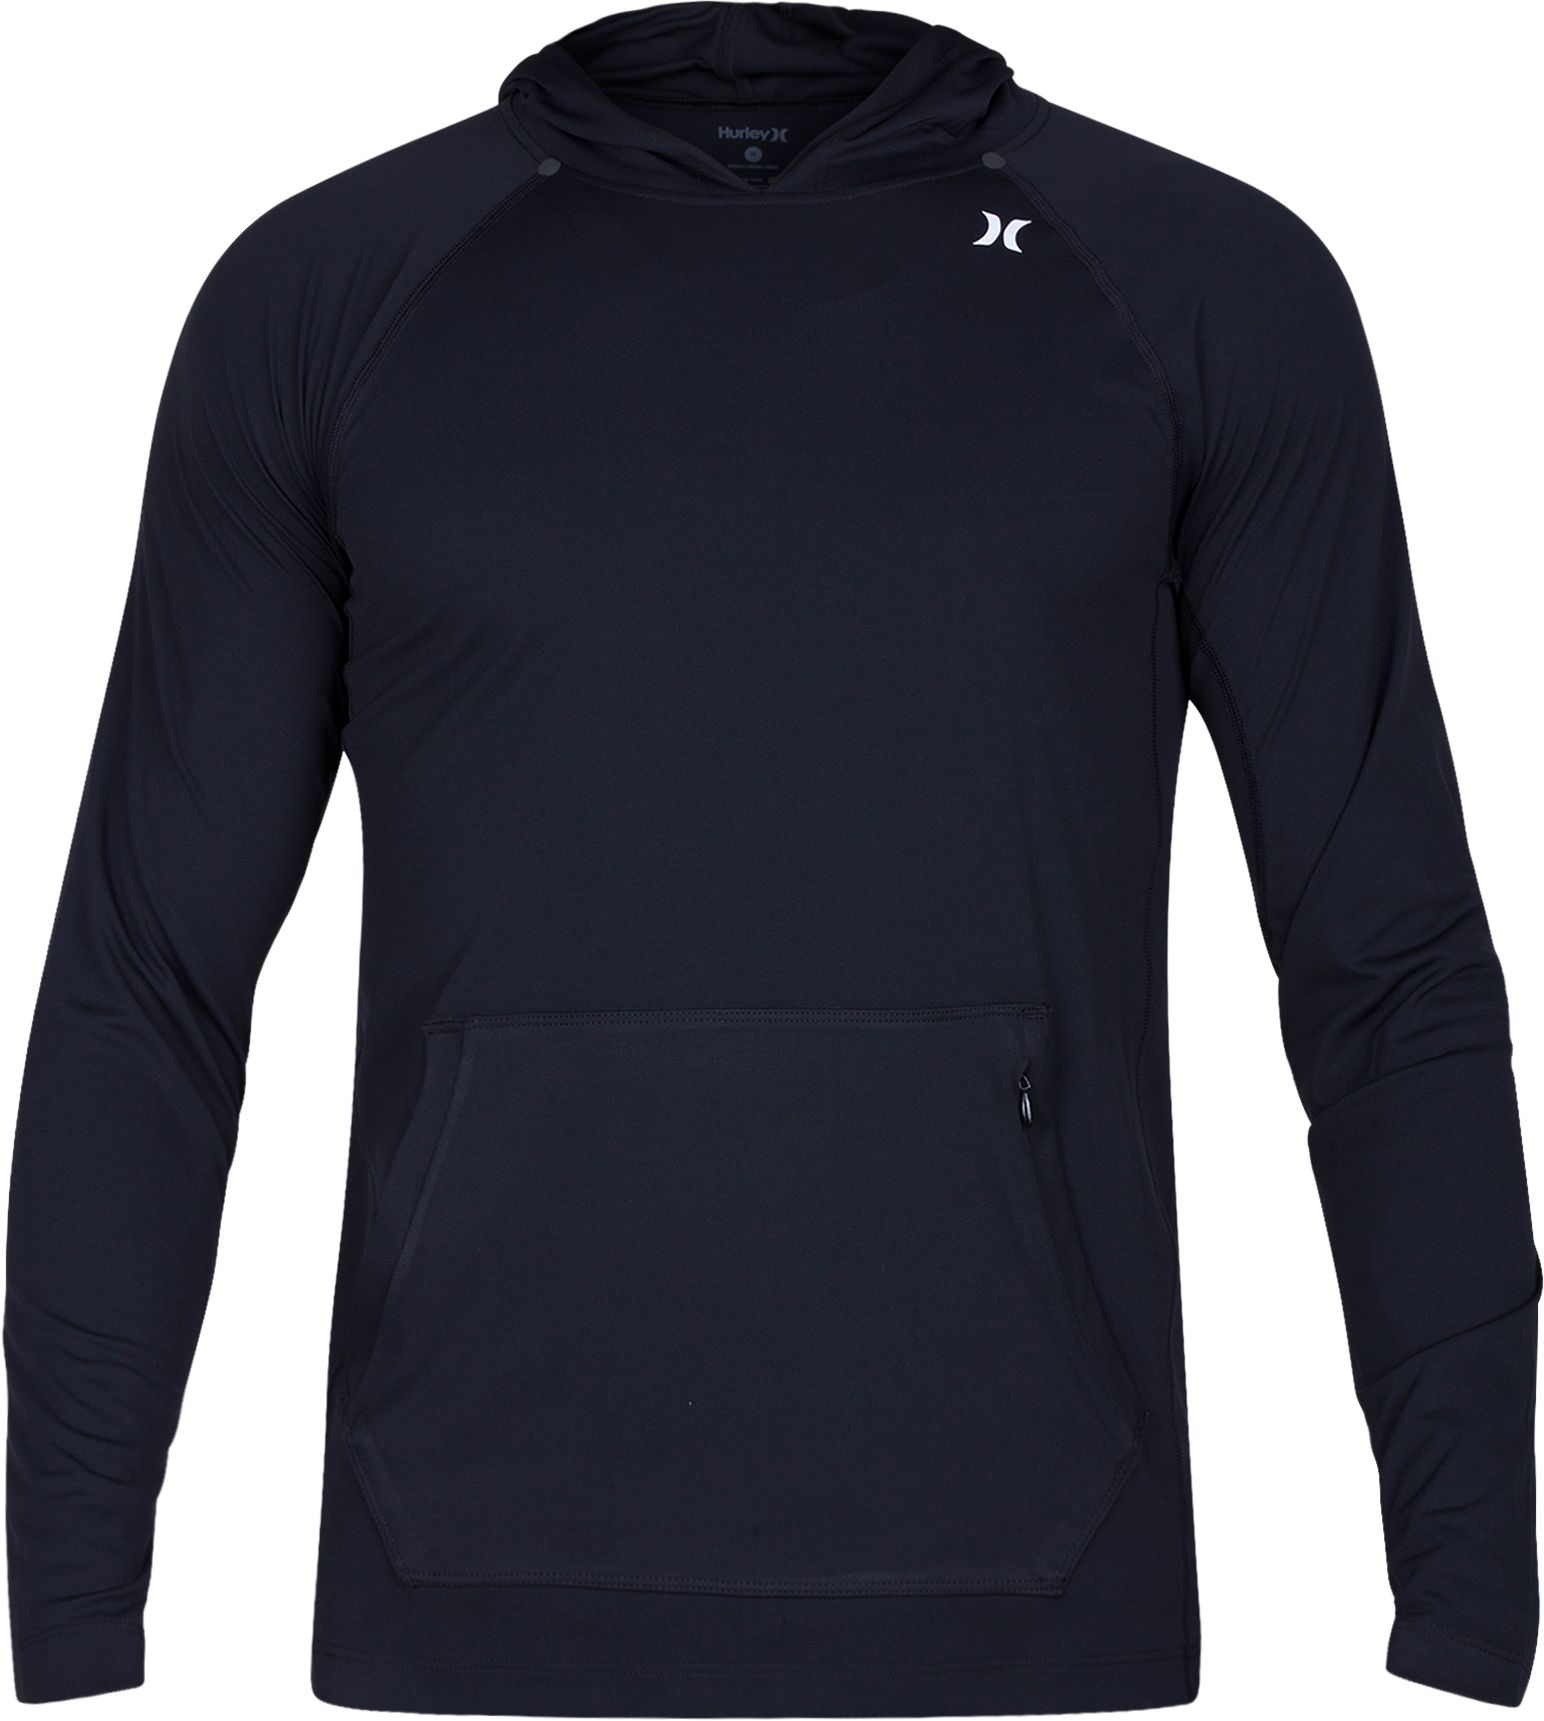 Hurley Men's Dri-FIT Icon Hooded Long Sleeve Surf Shirt | DICK'S ...